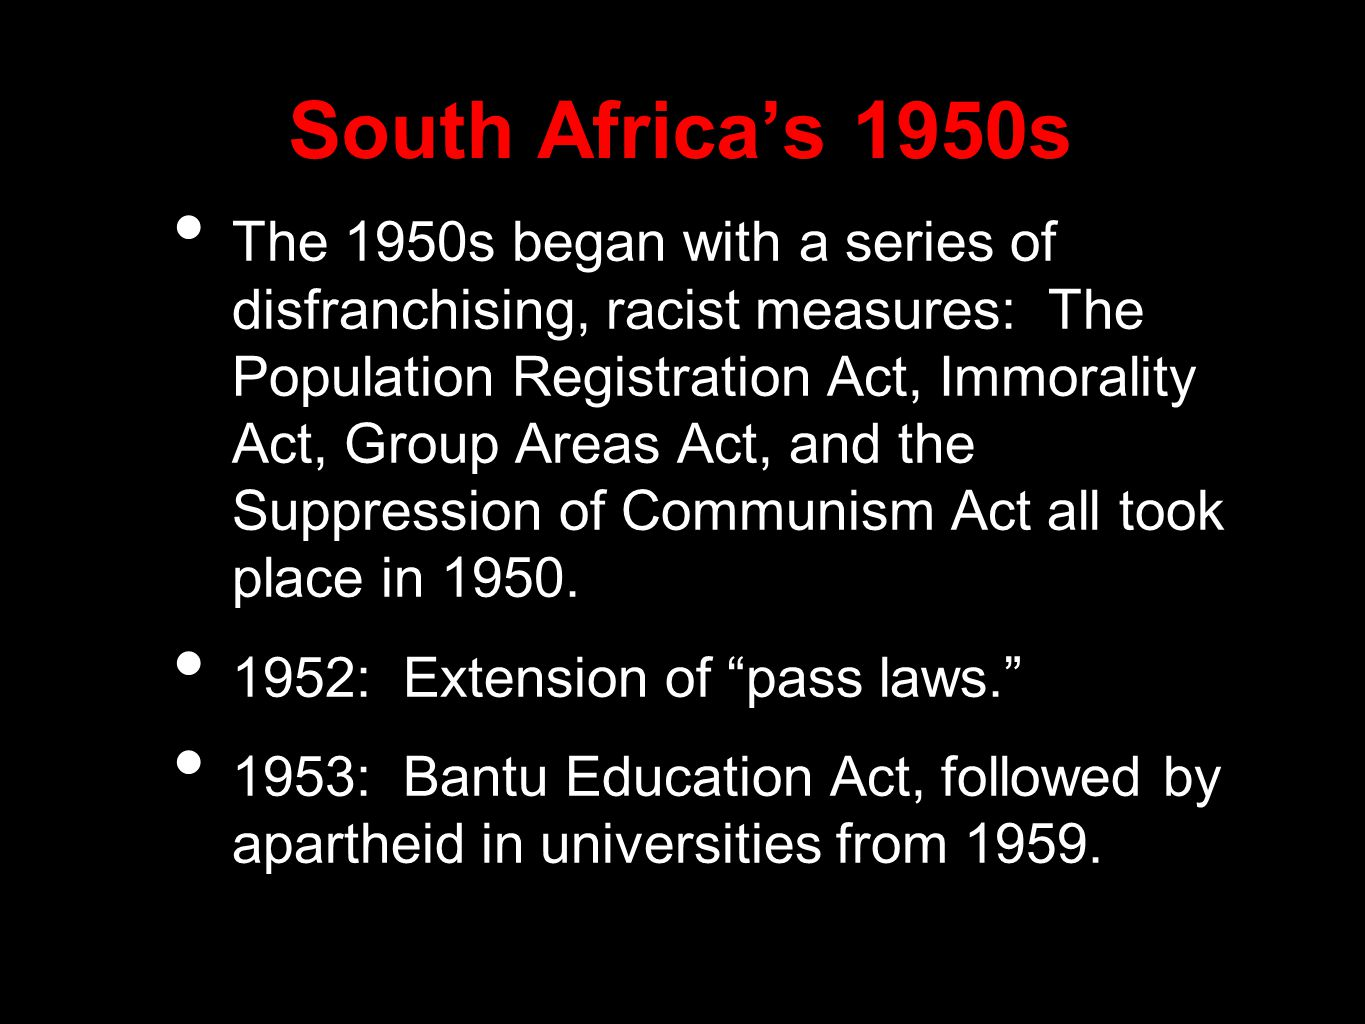 South Africa's 1950s The 1950s began with a series of disfranchising, racist measures: The Population Registration Act, Immorality Act, Group Areas Act, and the Suppression of Communism Act all took place in 1950.